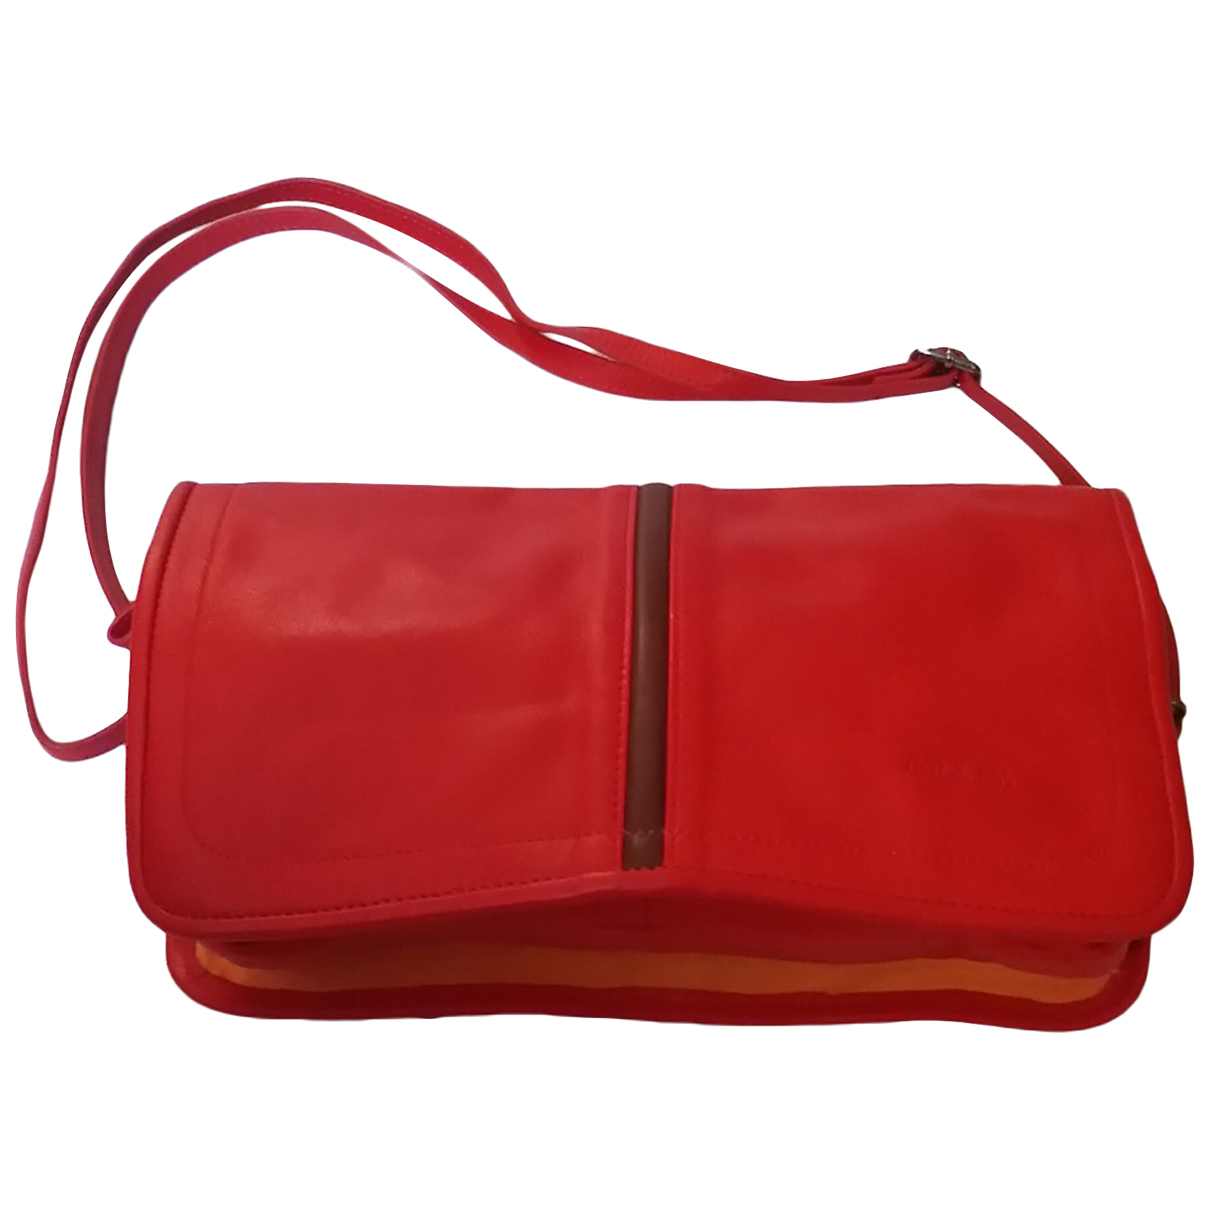 Nat & Nin N Red Leather handbag for Women N